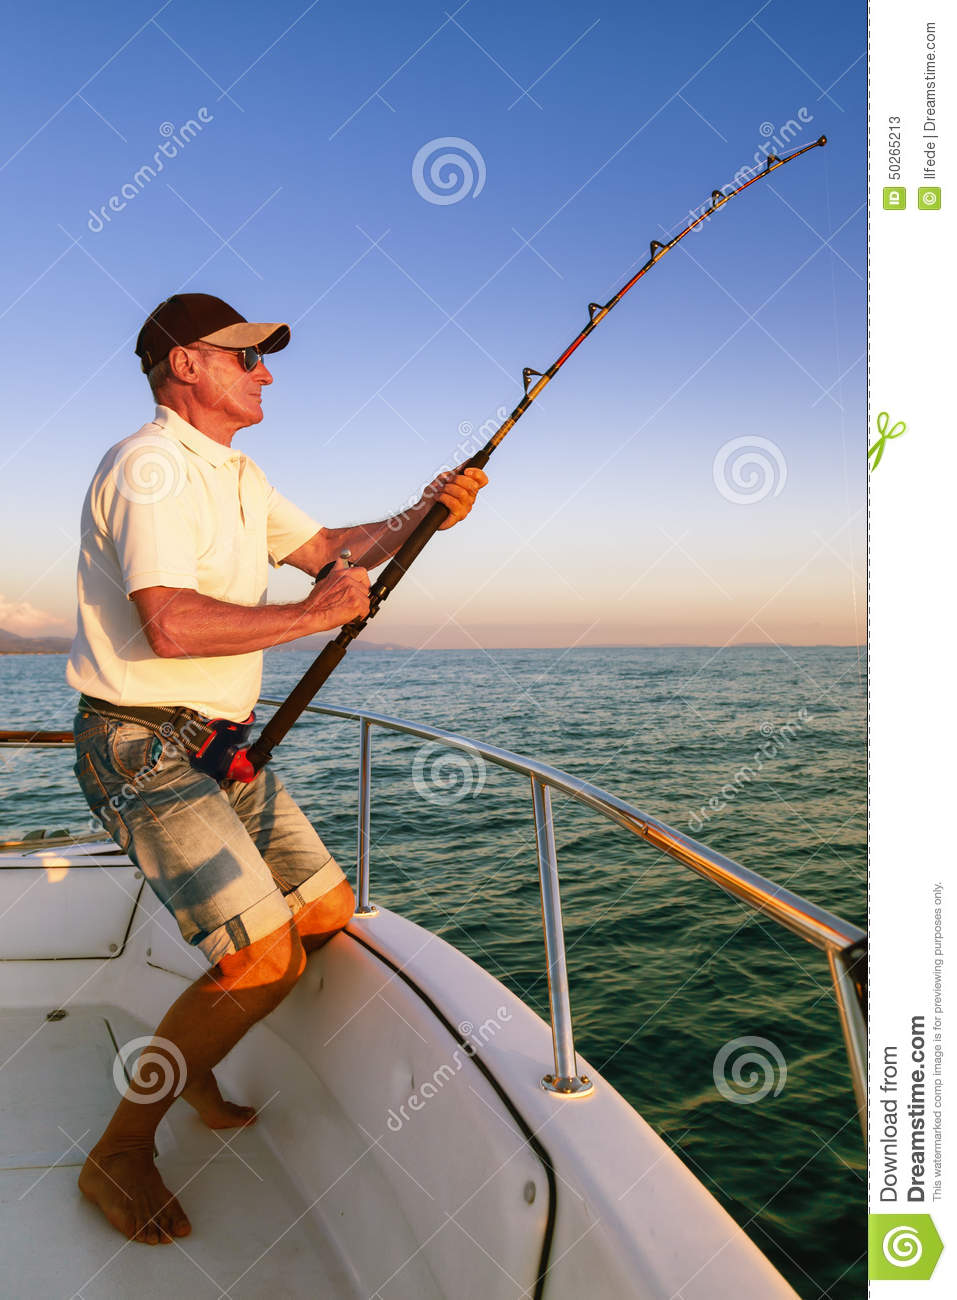 Angler fisherman fighting big fish from the boat